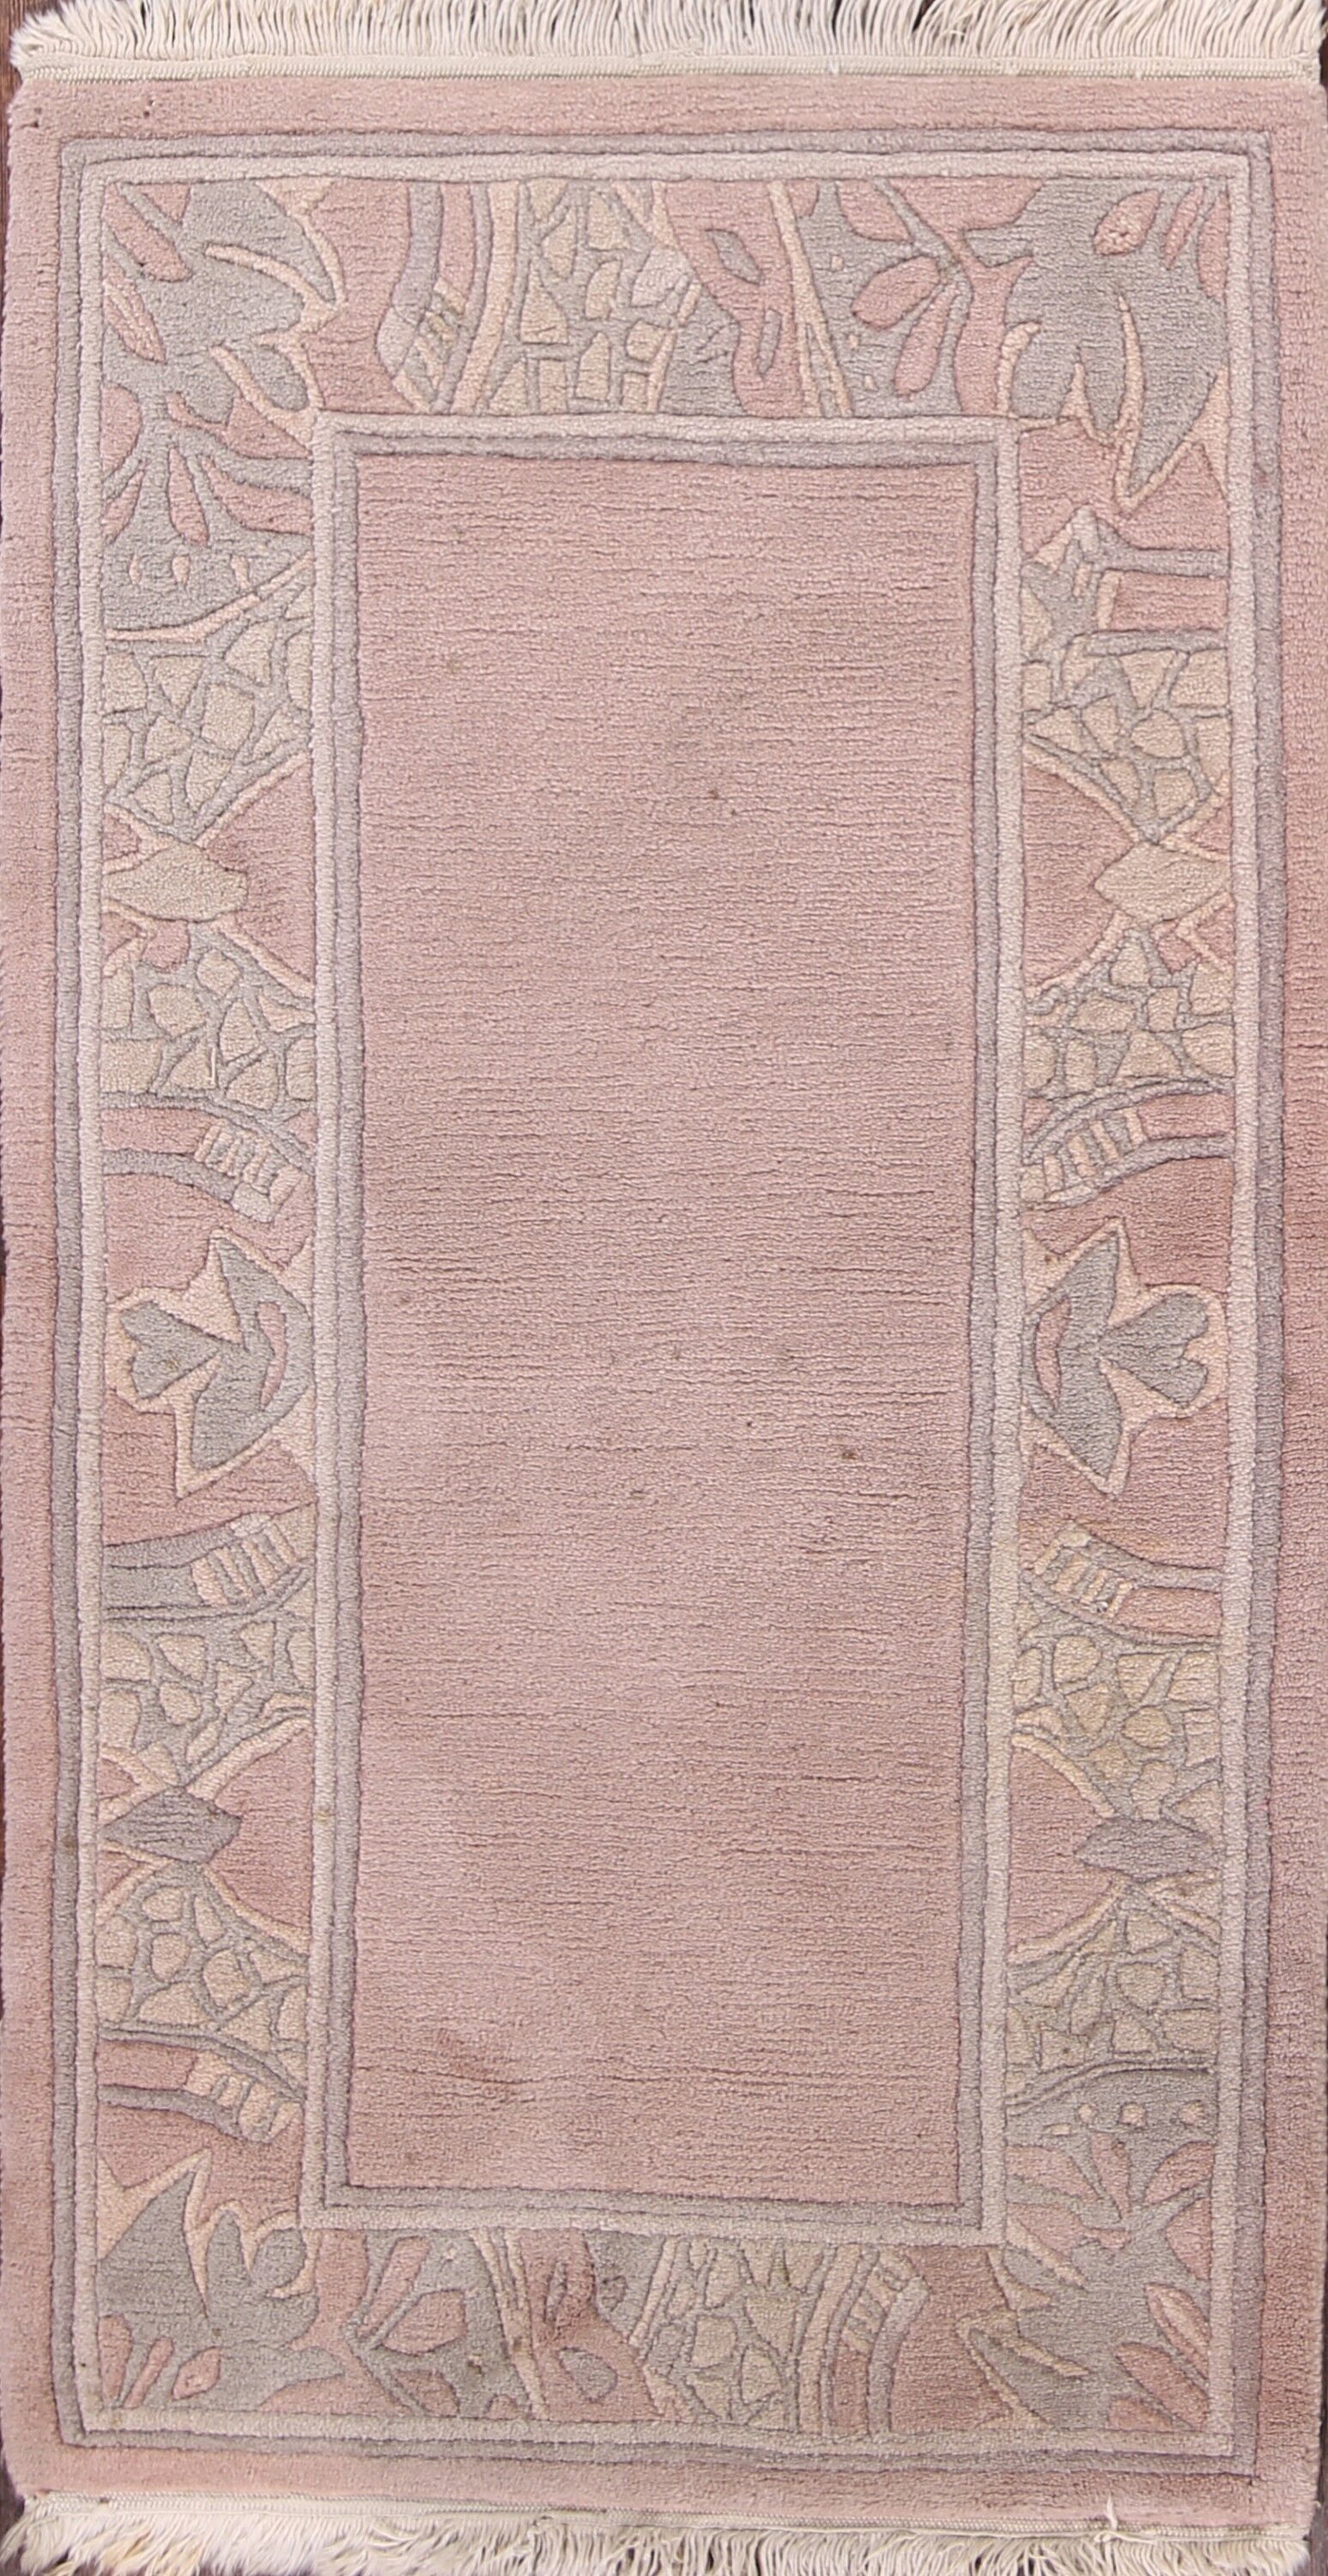 Commer Nepal Tibet Oriental Contemporary Hand-Knotted Wool Beige/Ivory Area Rug